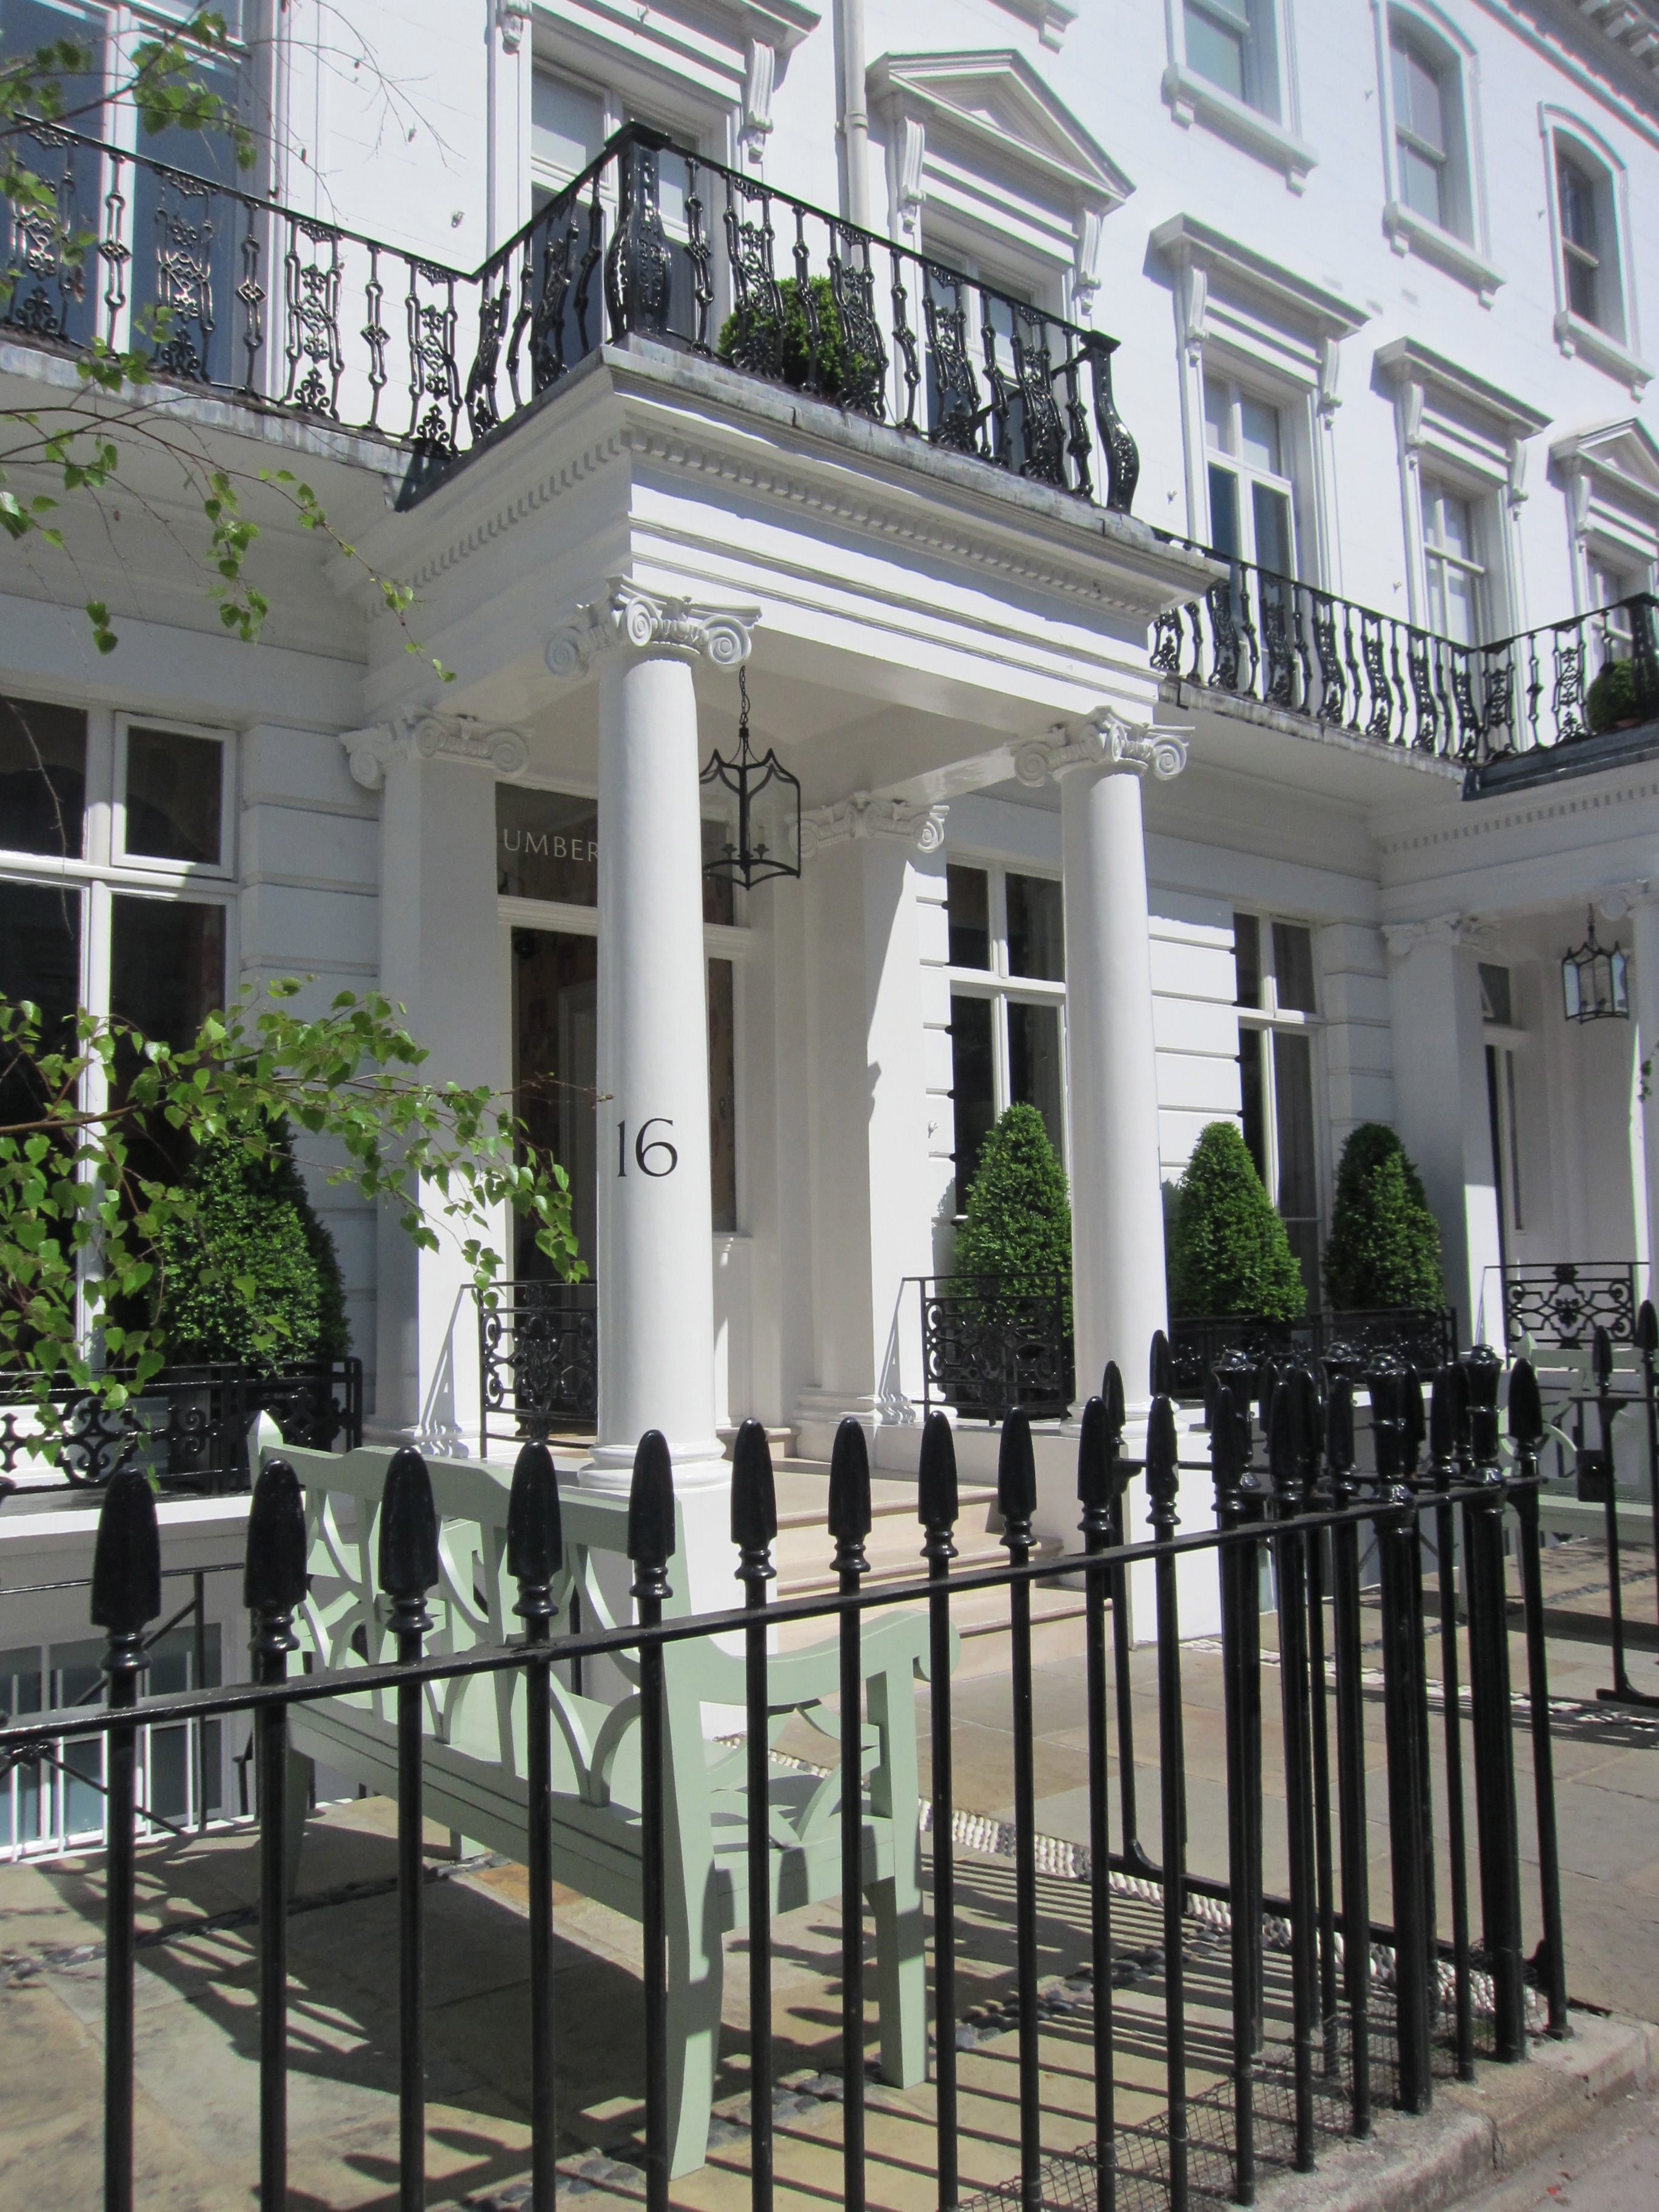 Number 16, London